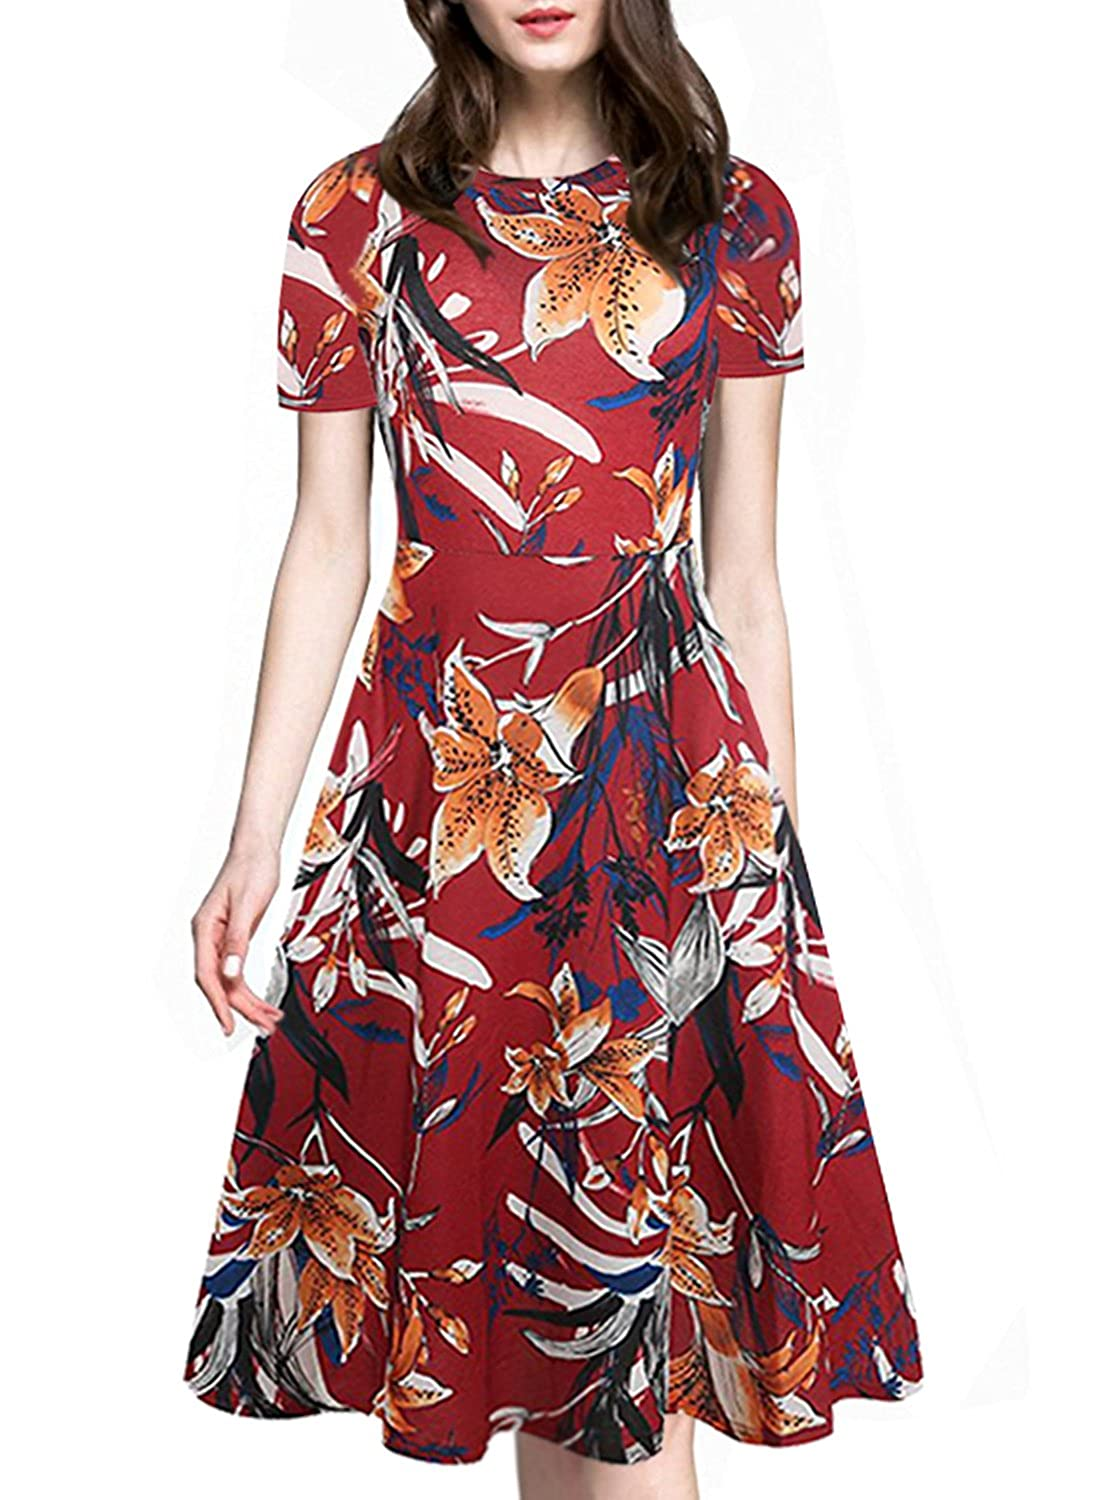 9723e4cb3 Top 10 wholesale Summer Going Out Dresses - Chinabrands.com